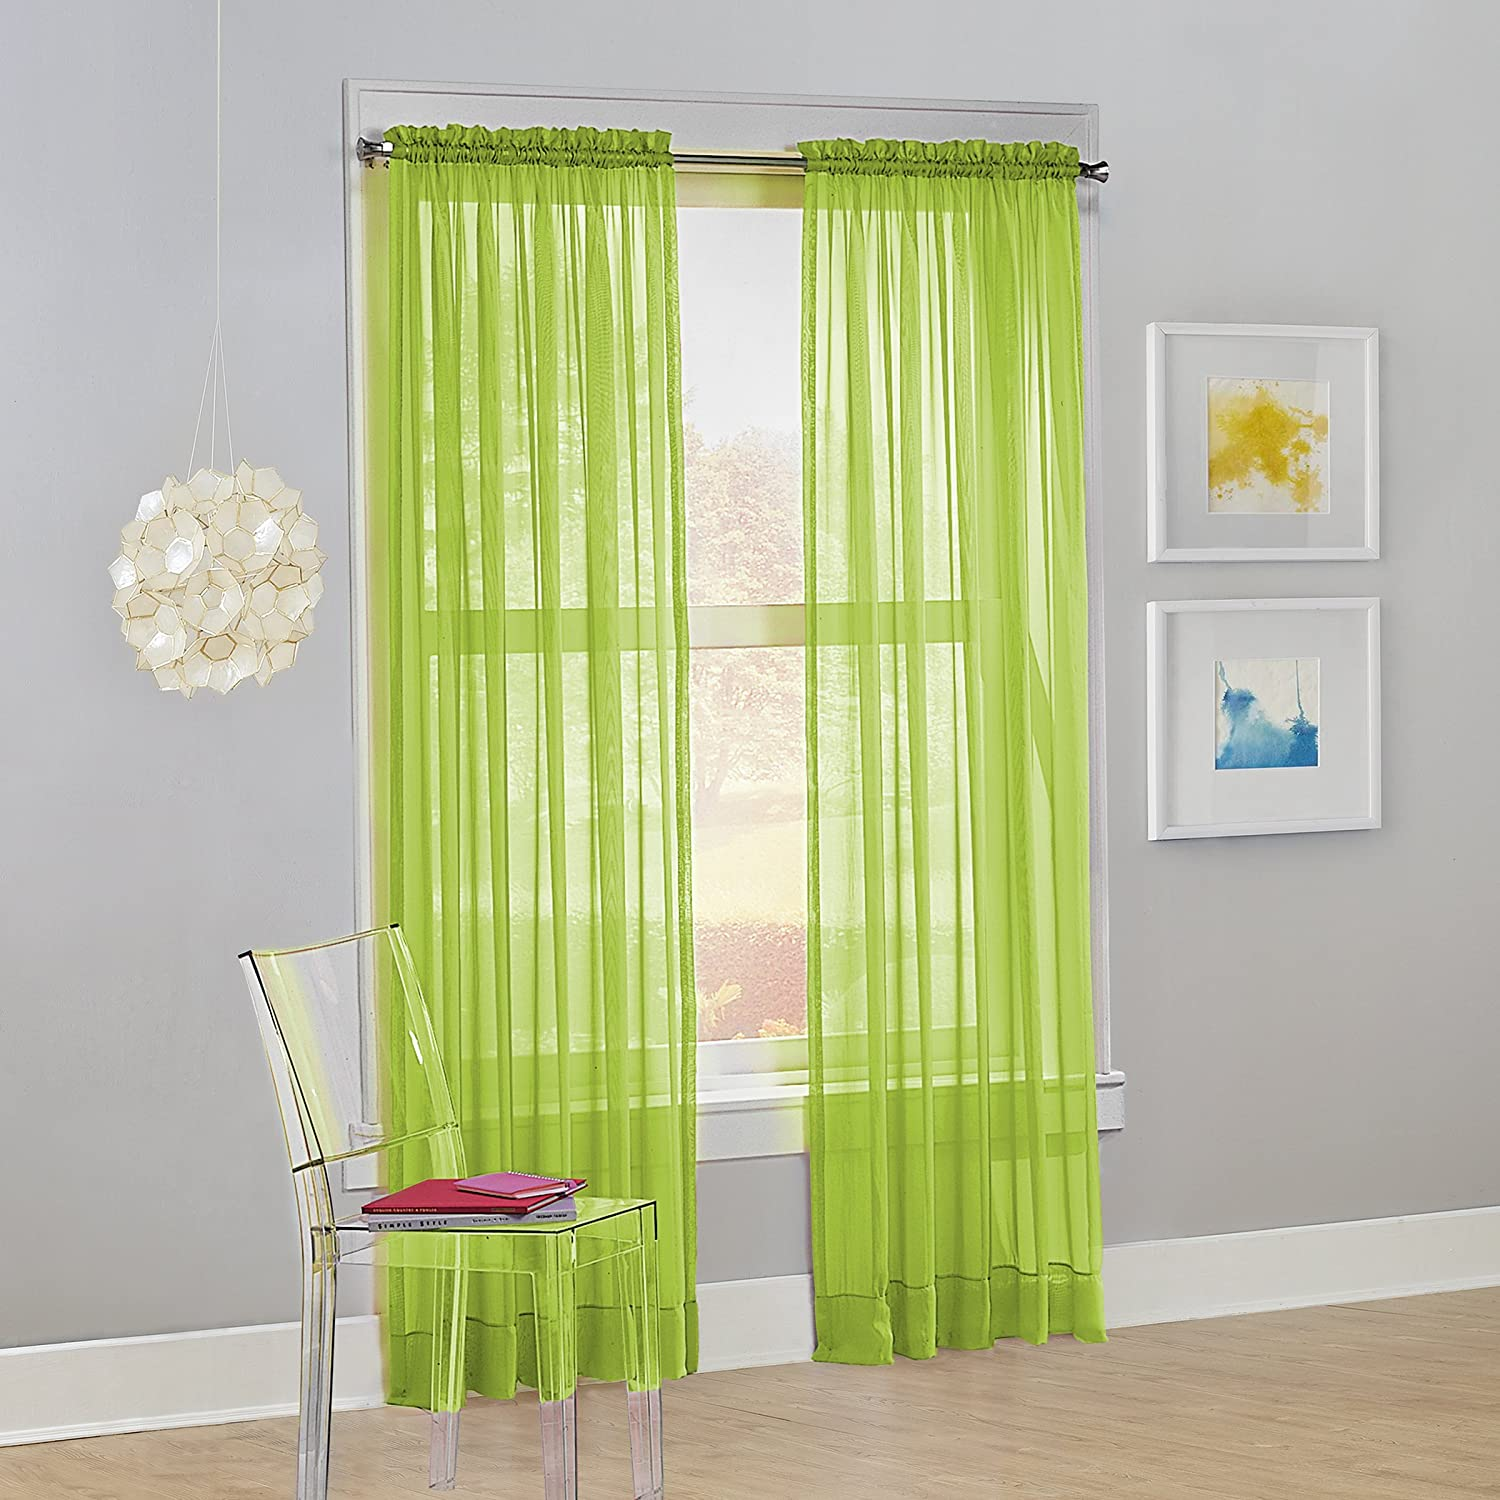 "No. 918 Calypso Sheer Voile Rod Pocket Curtain Panel, 59"" x 84"", Lime Green, 1 Panel"